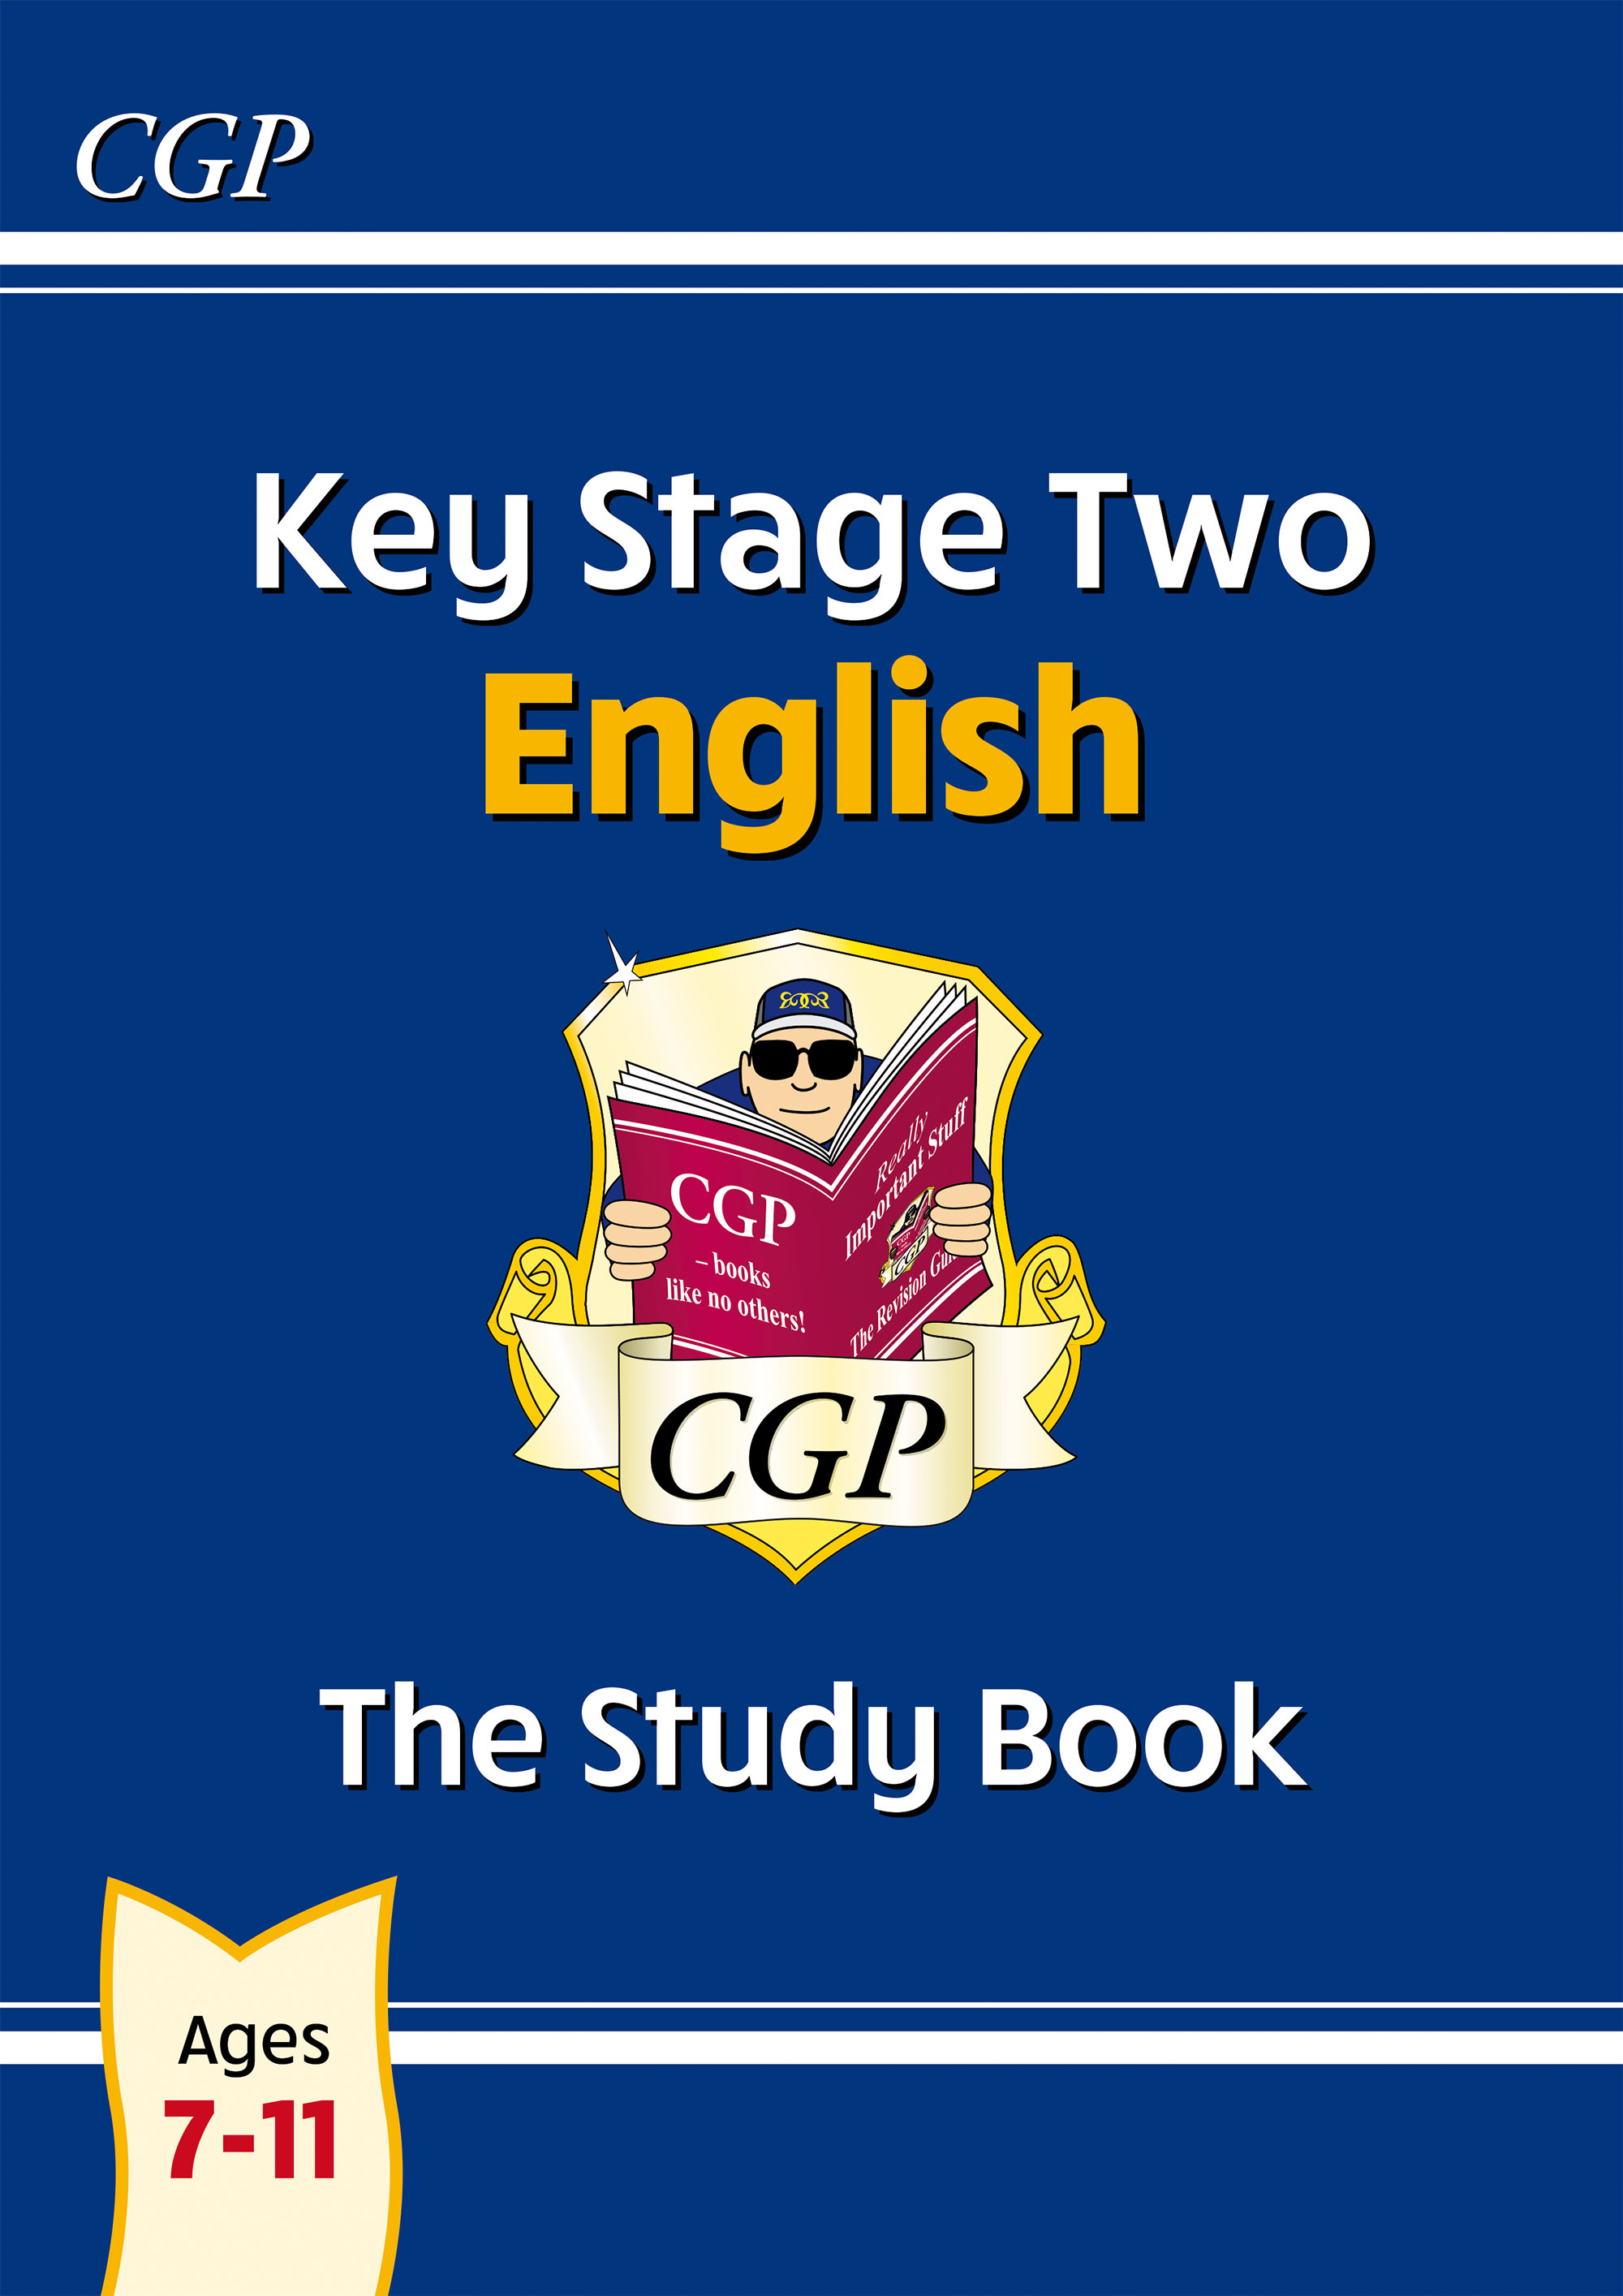 EHR26DK - New KS2 English Study Book - Ages 7-11